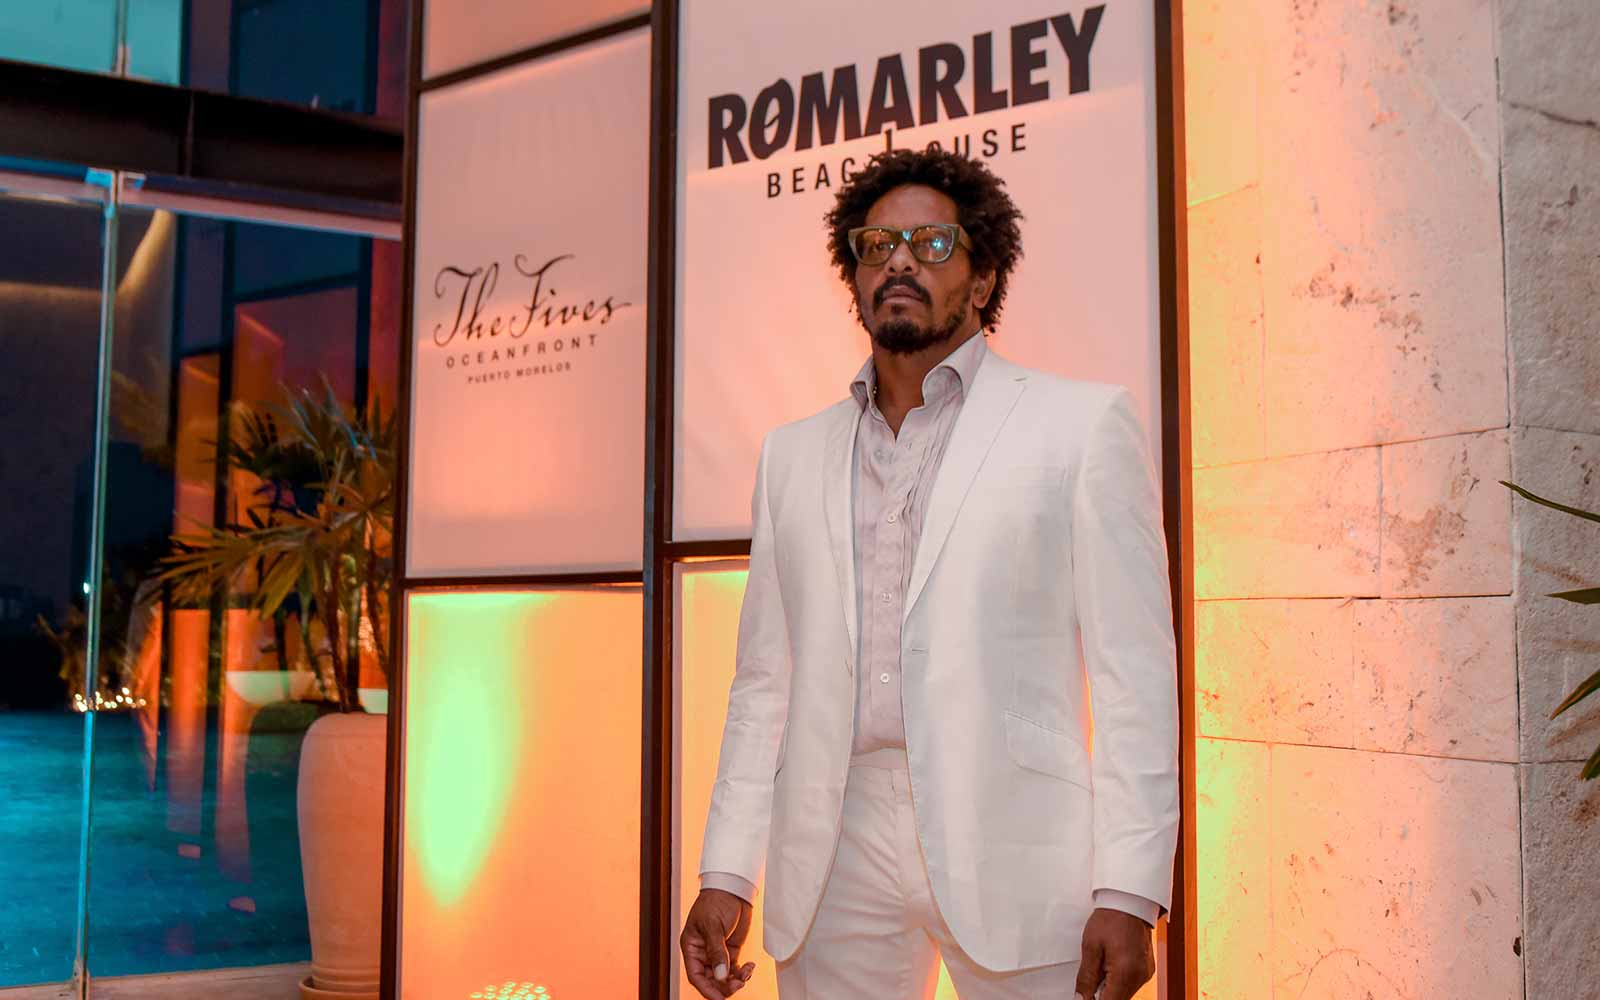 Rohan marley the fives oceanfront